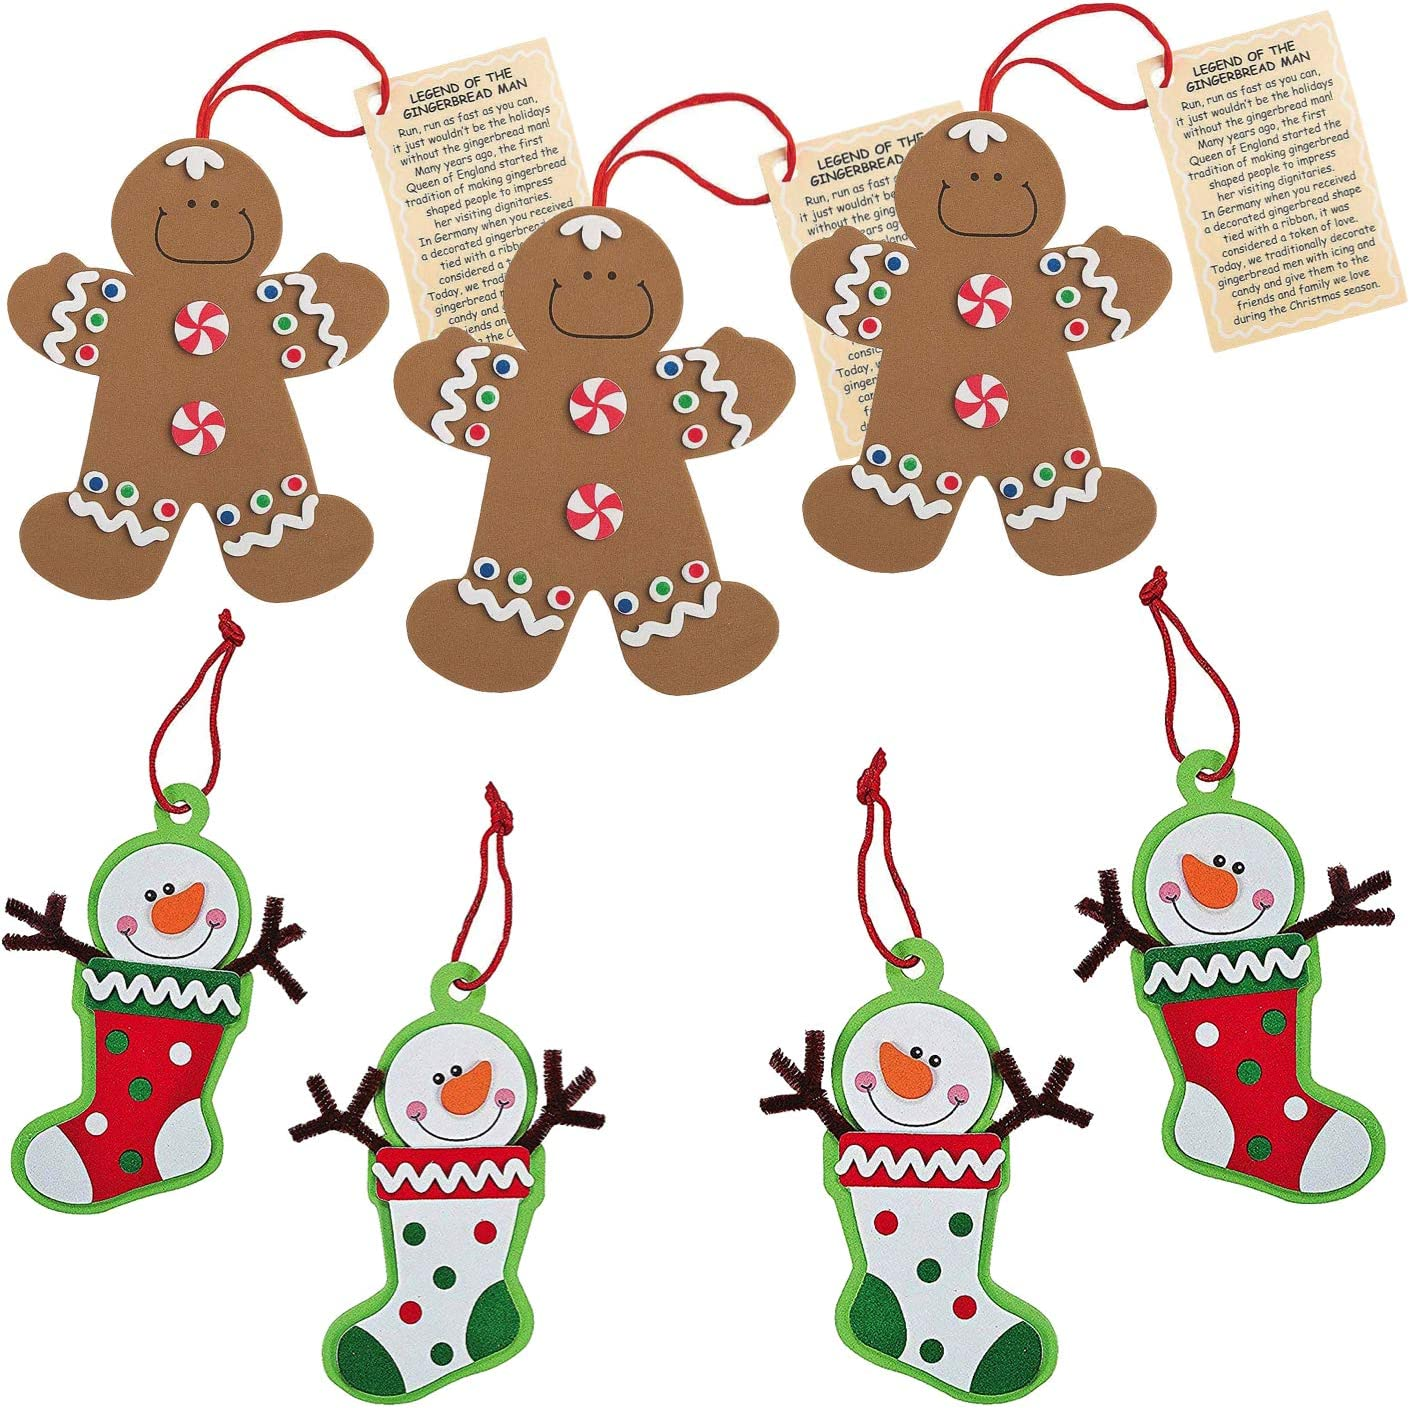 Gingerbread Man and Snowman Christmas Ornament Kits Set of 24 Christmas Crafts for Kids